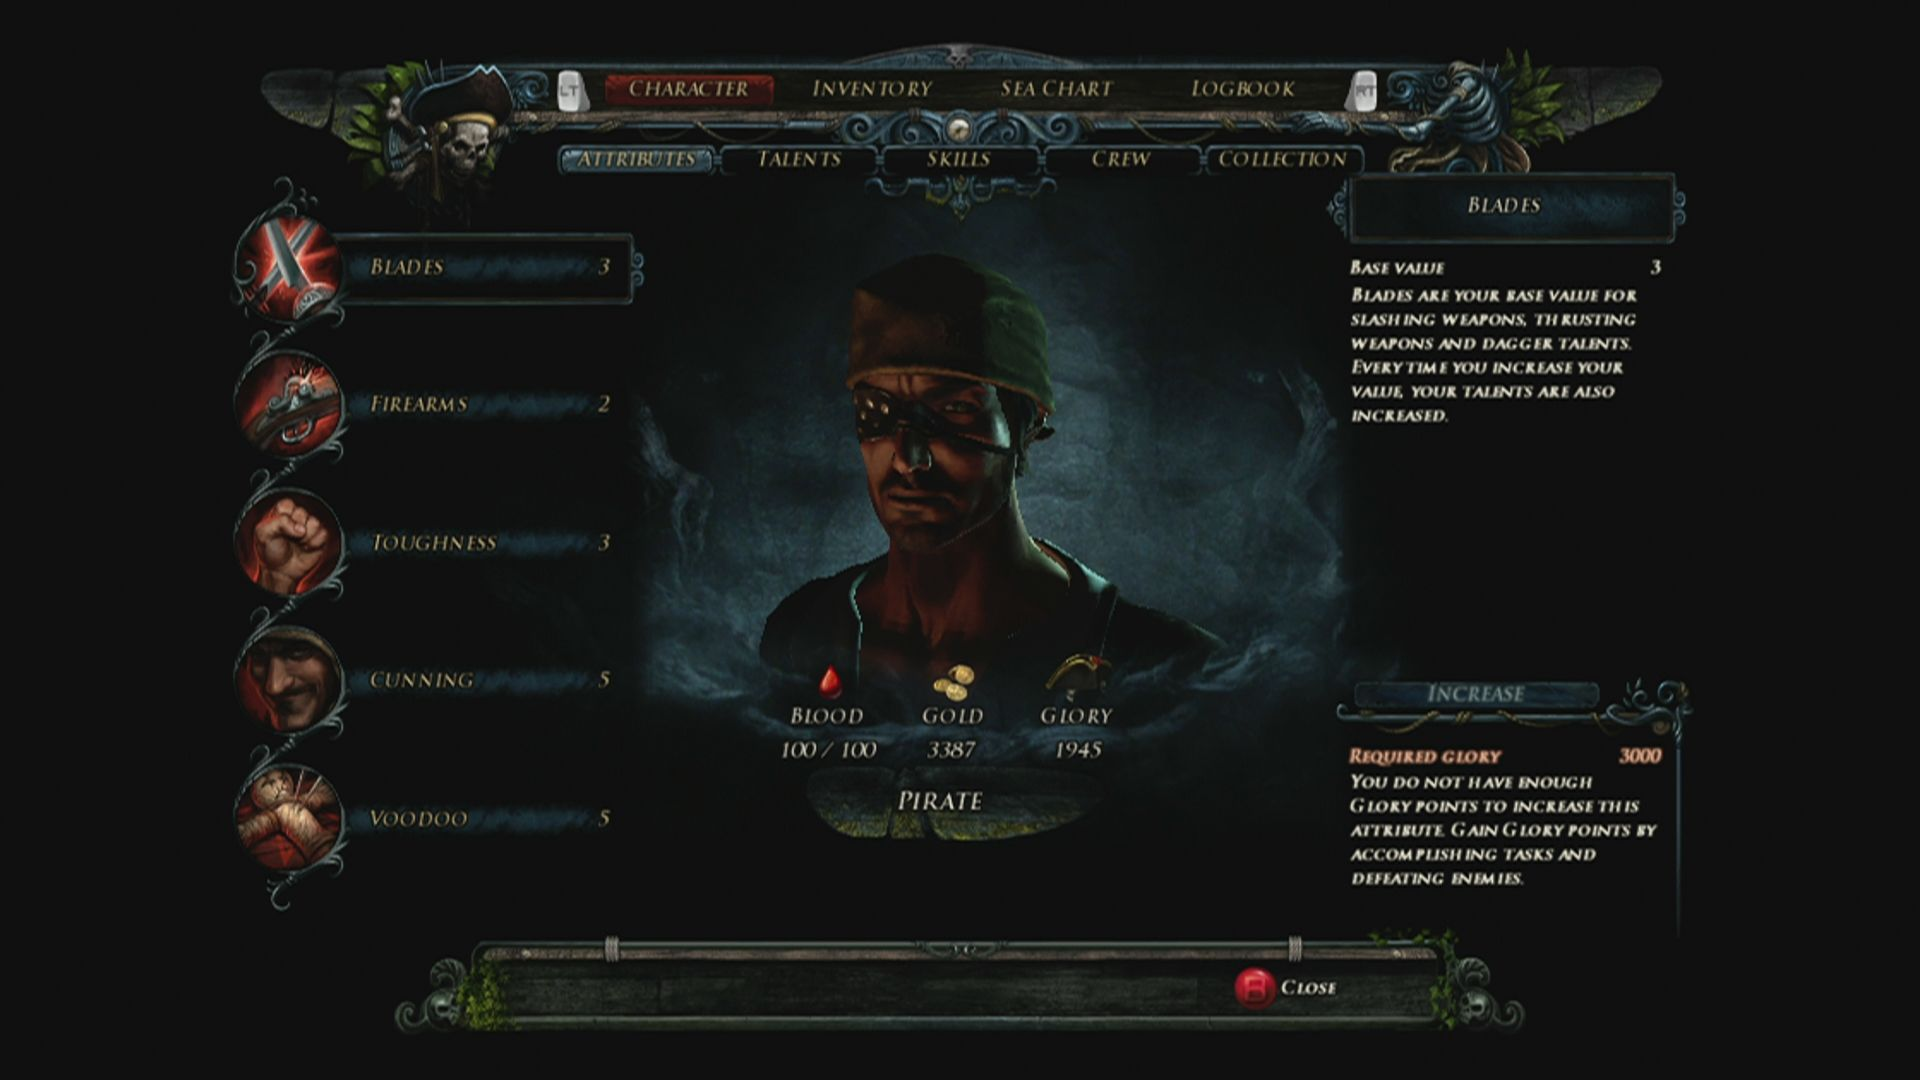 Risen 2: Dark Waters Xbox 360 Character attribute screen